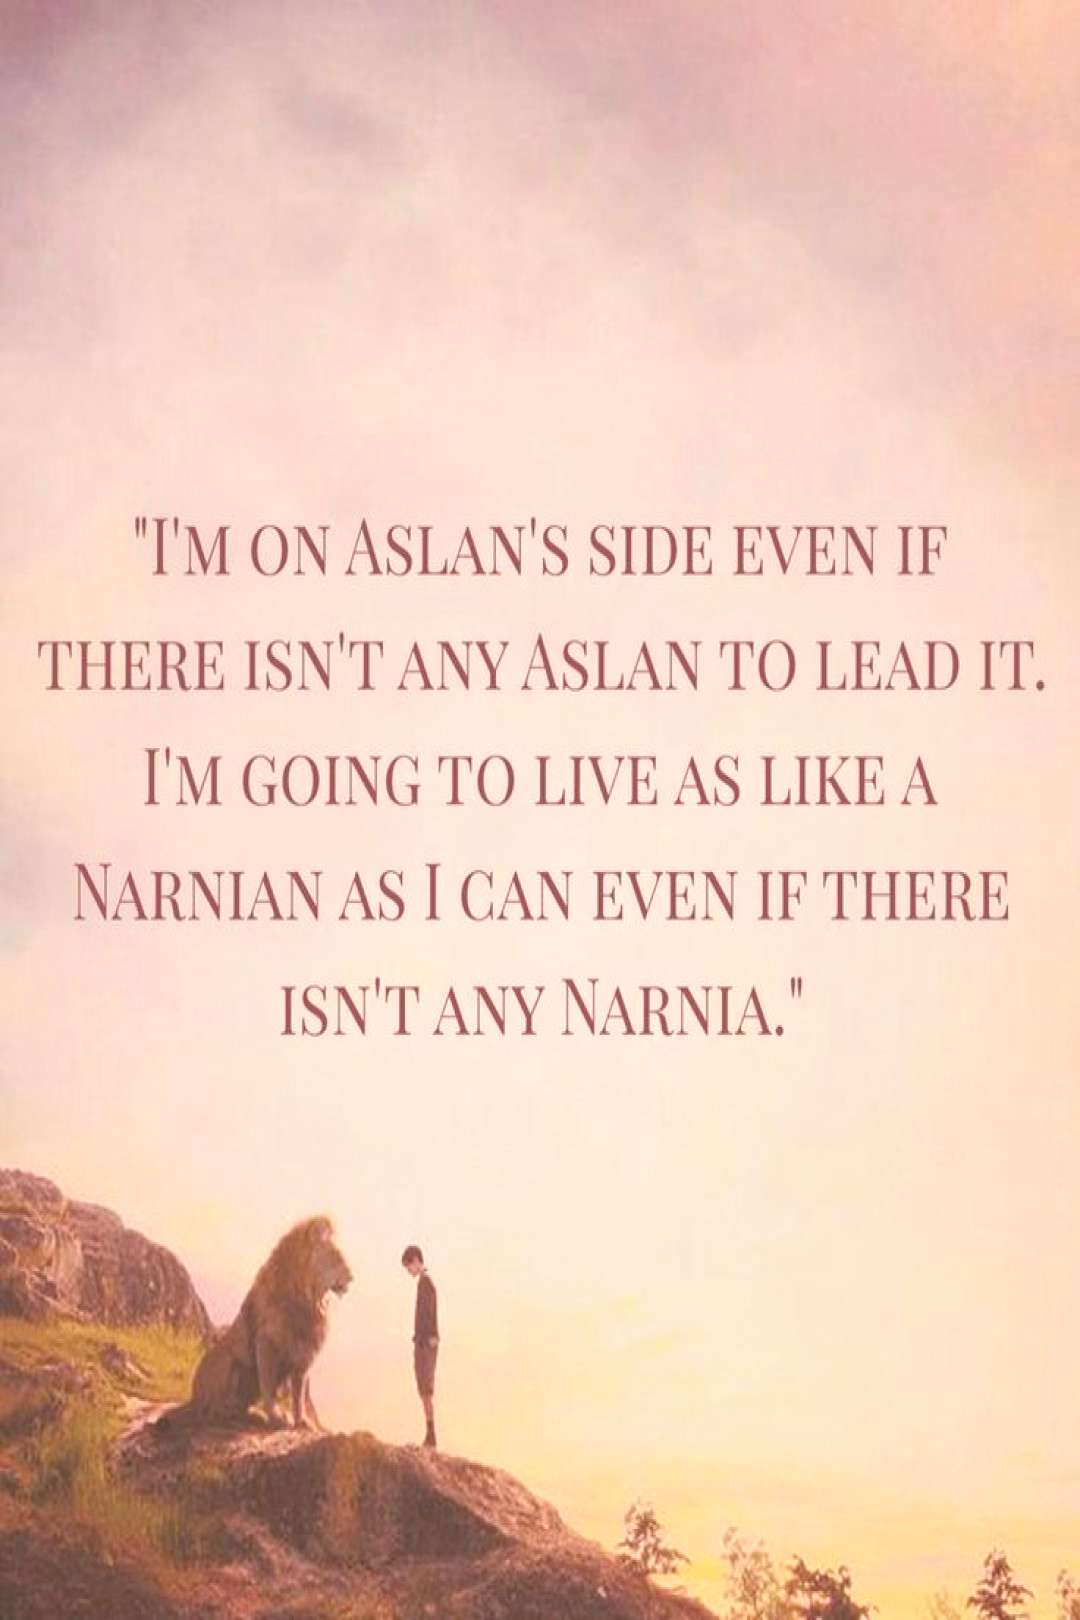 -Puddleglum, The Silver Chair, Chronicles of Narnia by C.S. Lewis